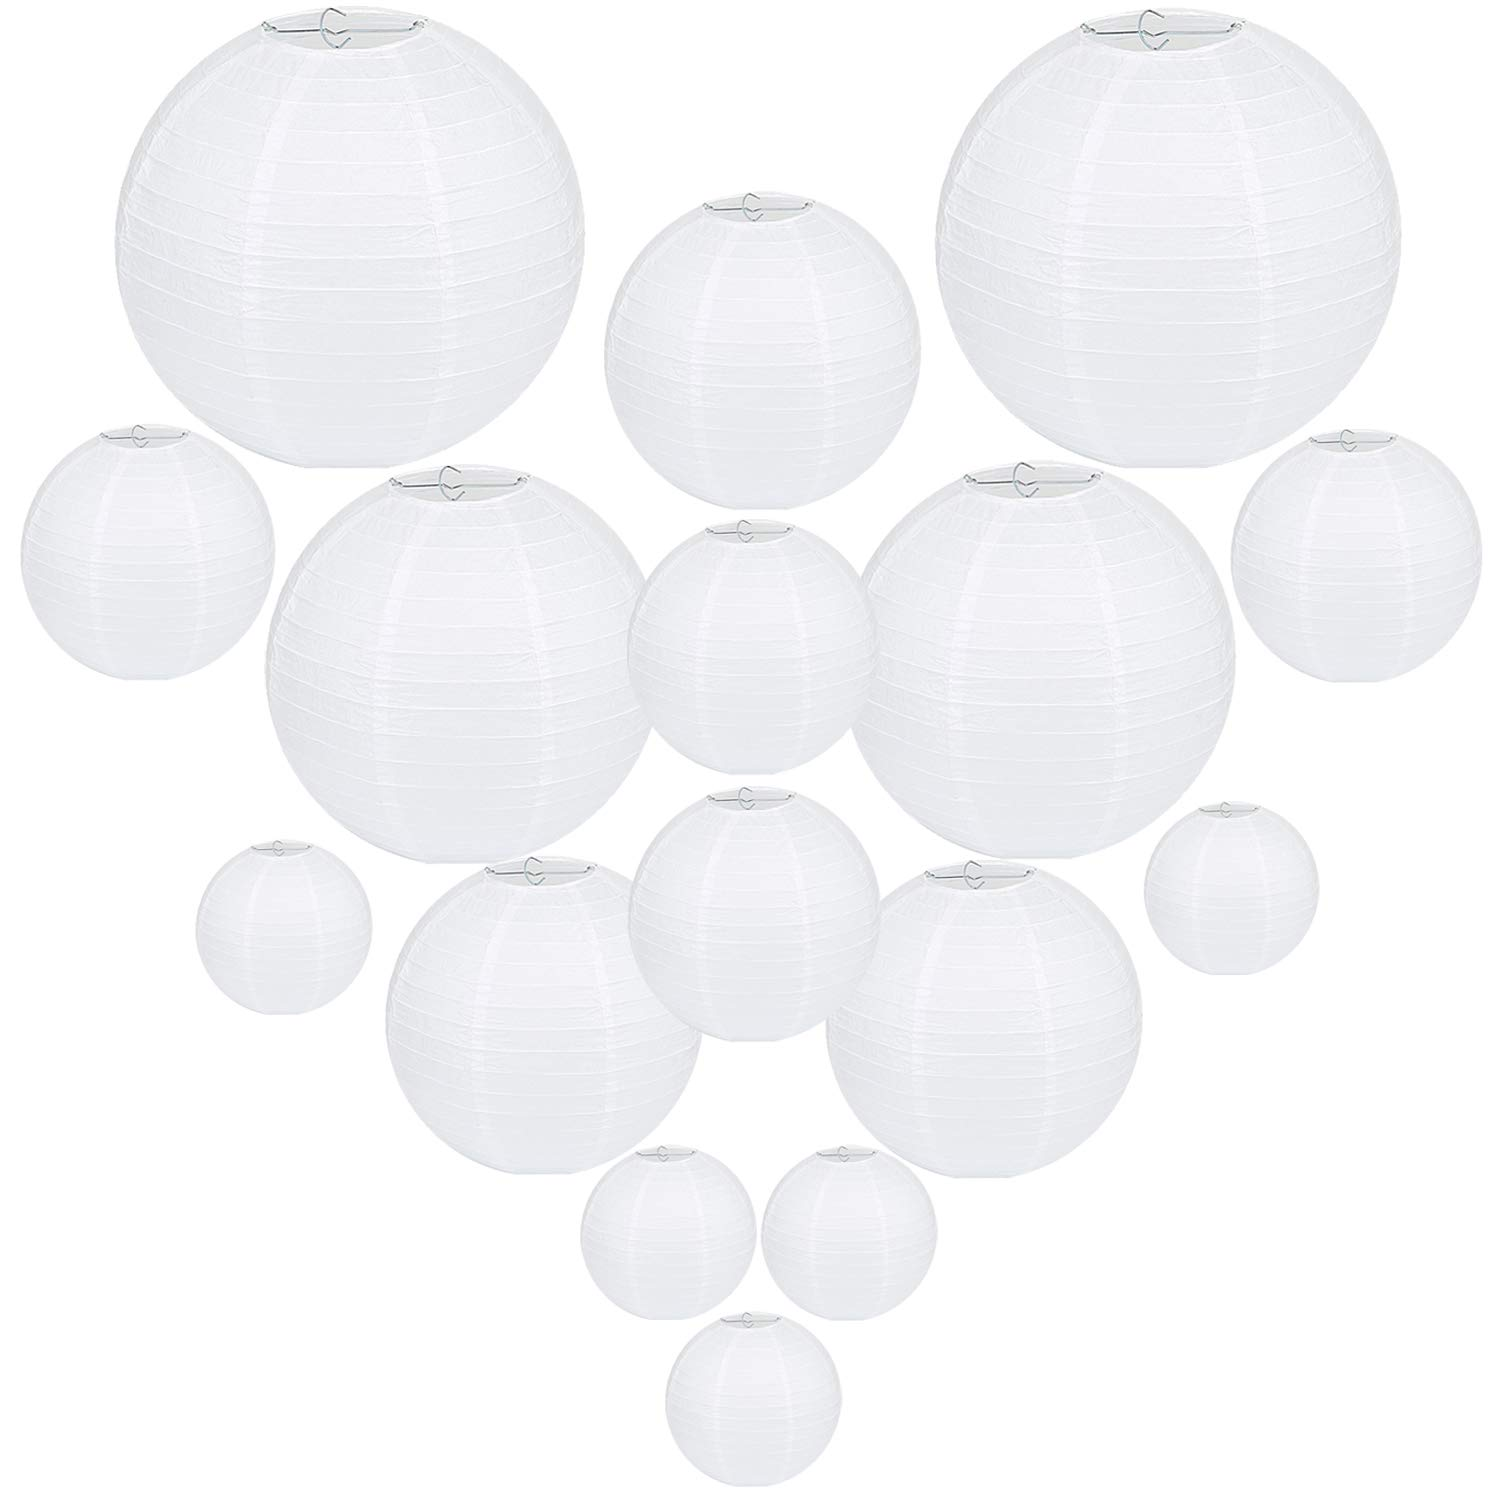 26 Packs Paper Lanterns,Assorted Sizes, White Paper Lantern Decorative,Chinese Paper Hanging Decorations Ball Lanterns Lamps for Weddings